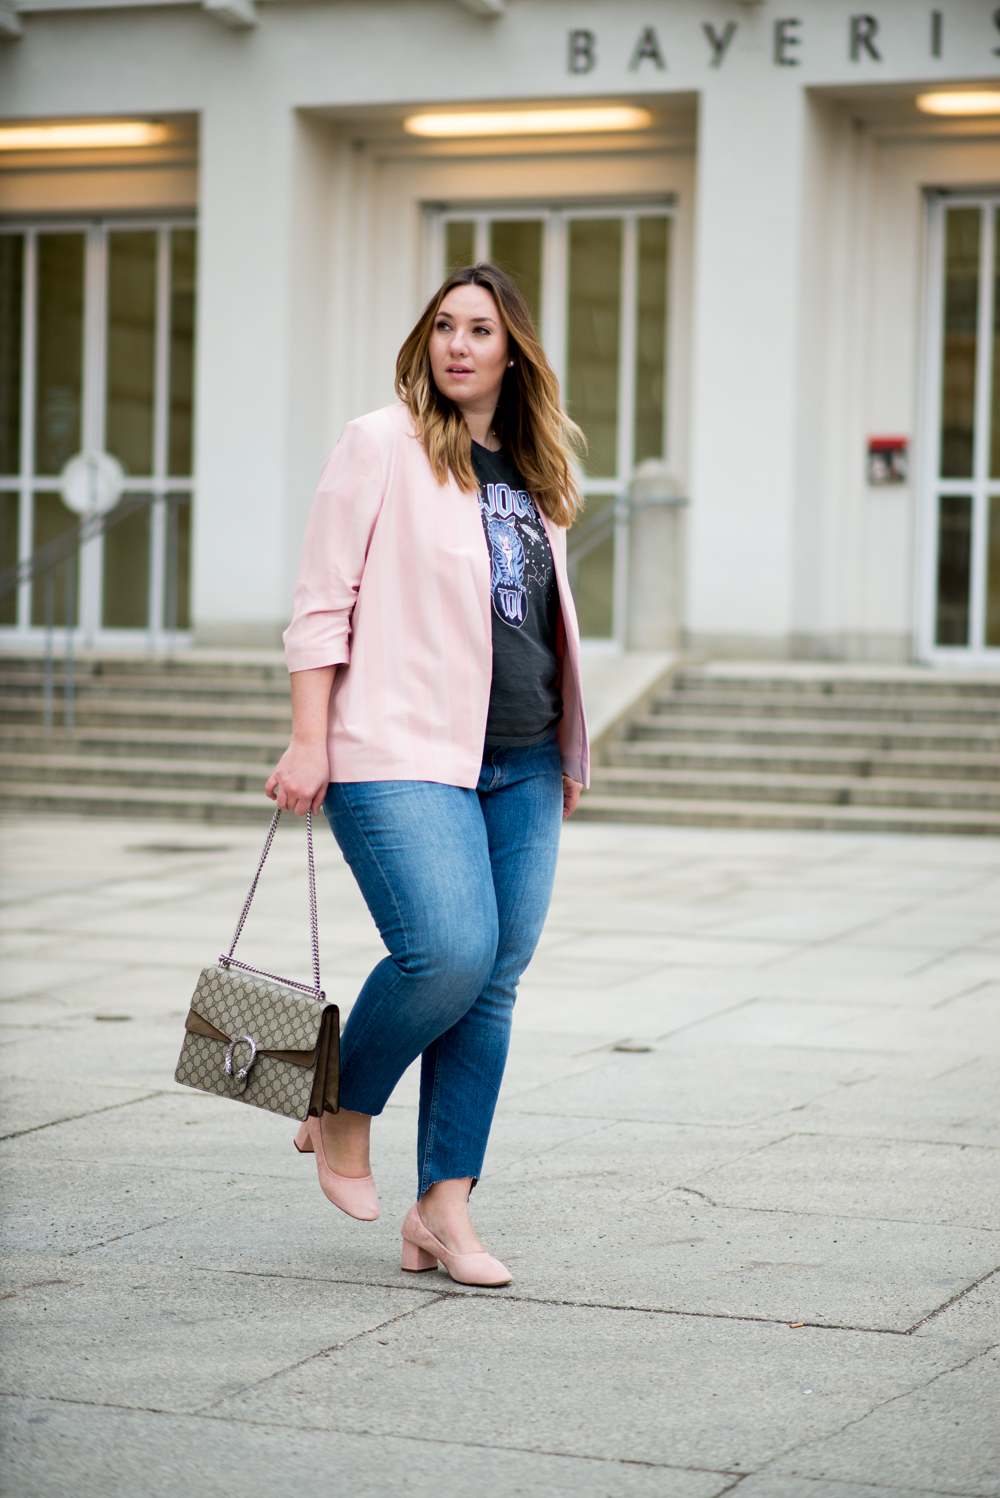 The Skinny and the Curvy One_Plussize_Blogger_Fashionblog Deutschland_Blogger_Curve Fashion (3 von 8)